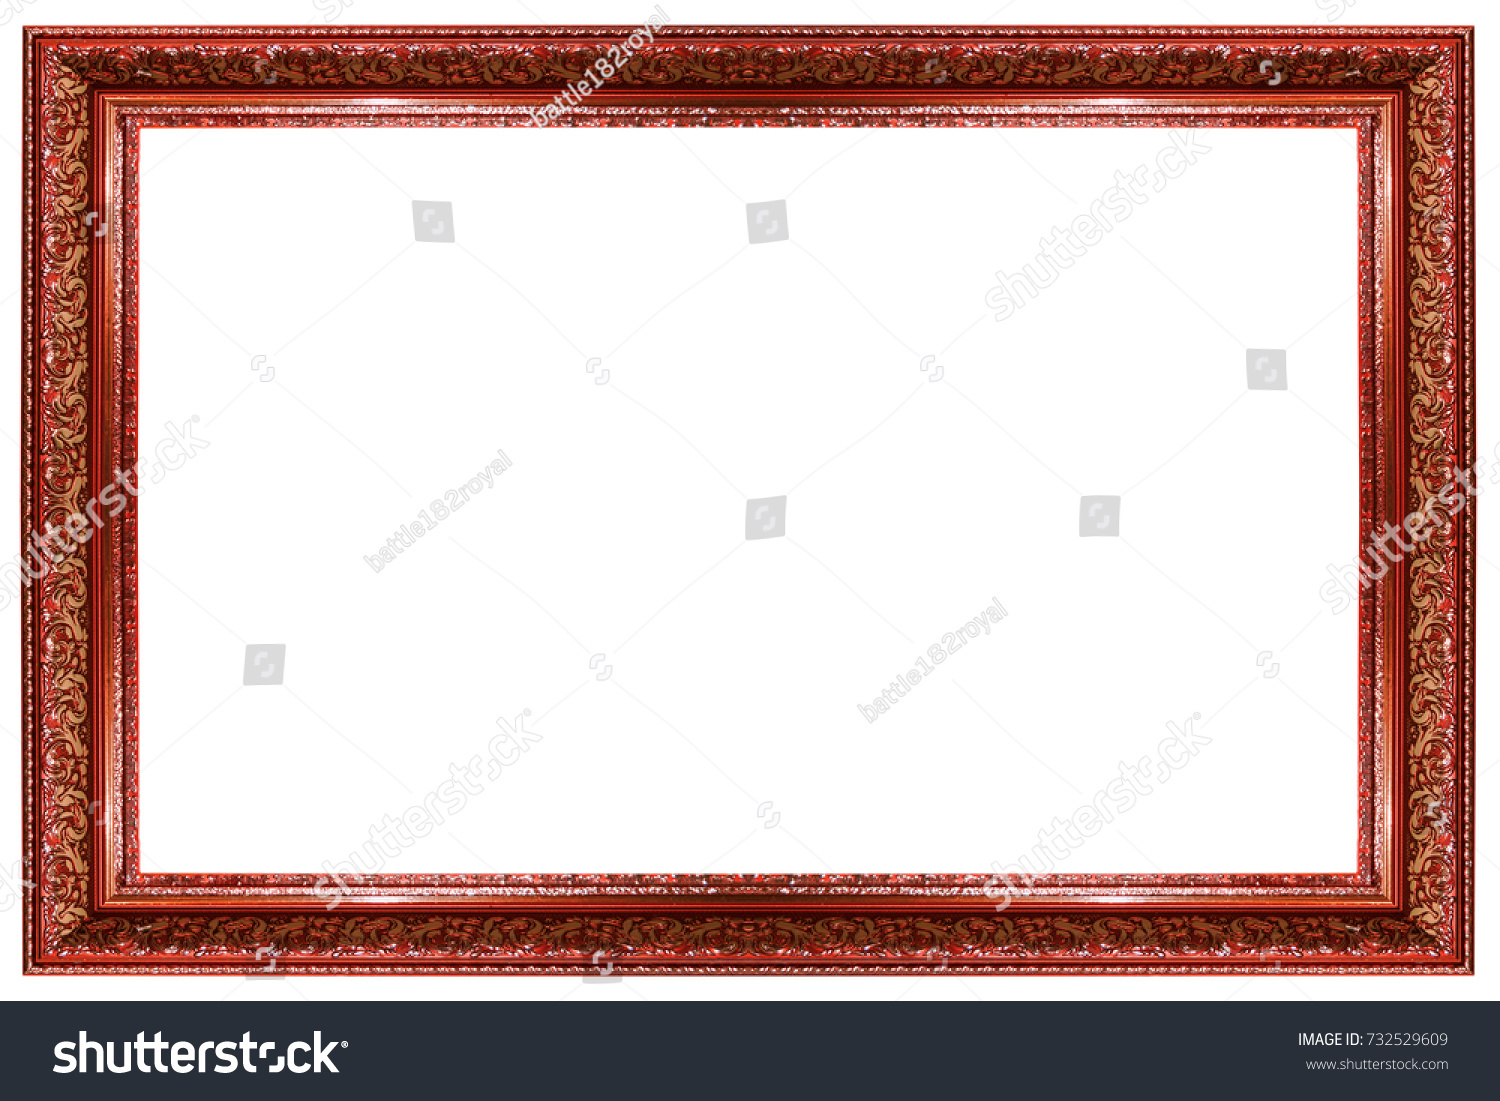 Blank frame on white background stock photo 732529609 shutterstock blank frame on a white background jeuxipadfo Gallery